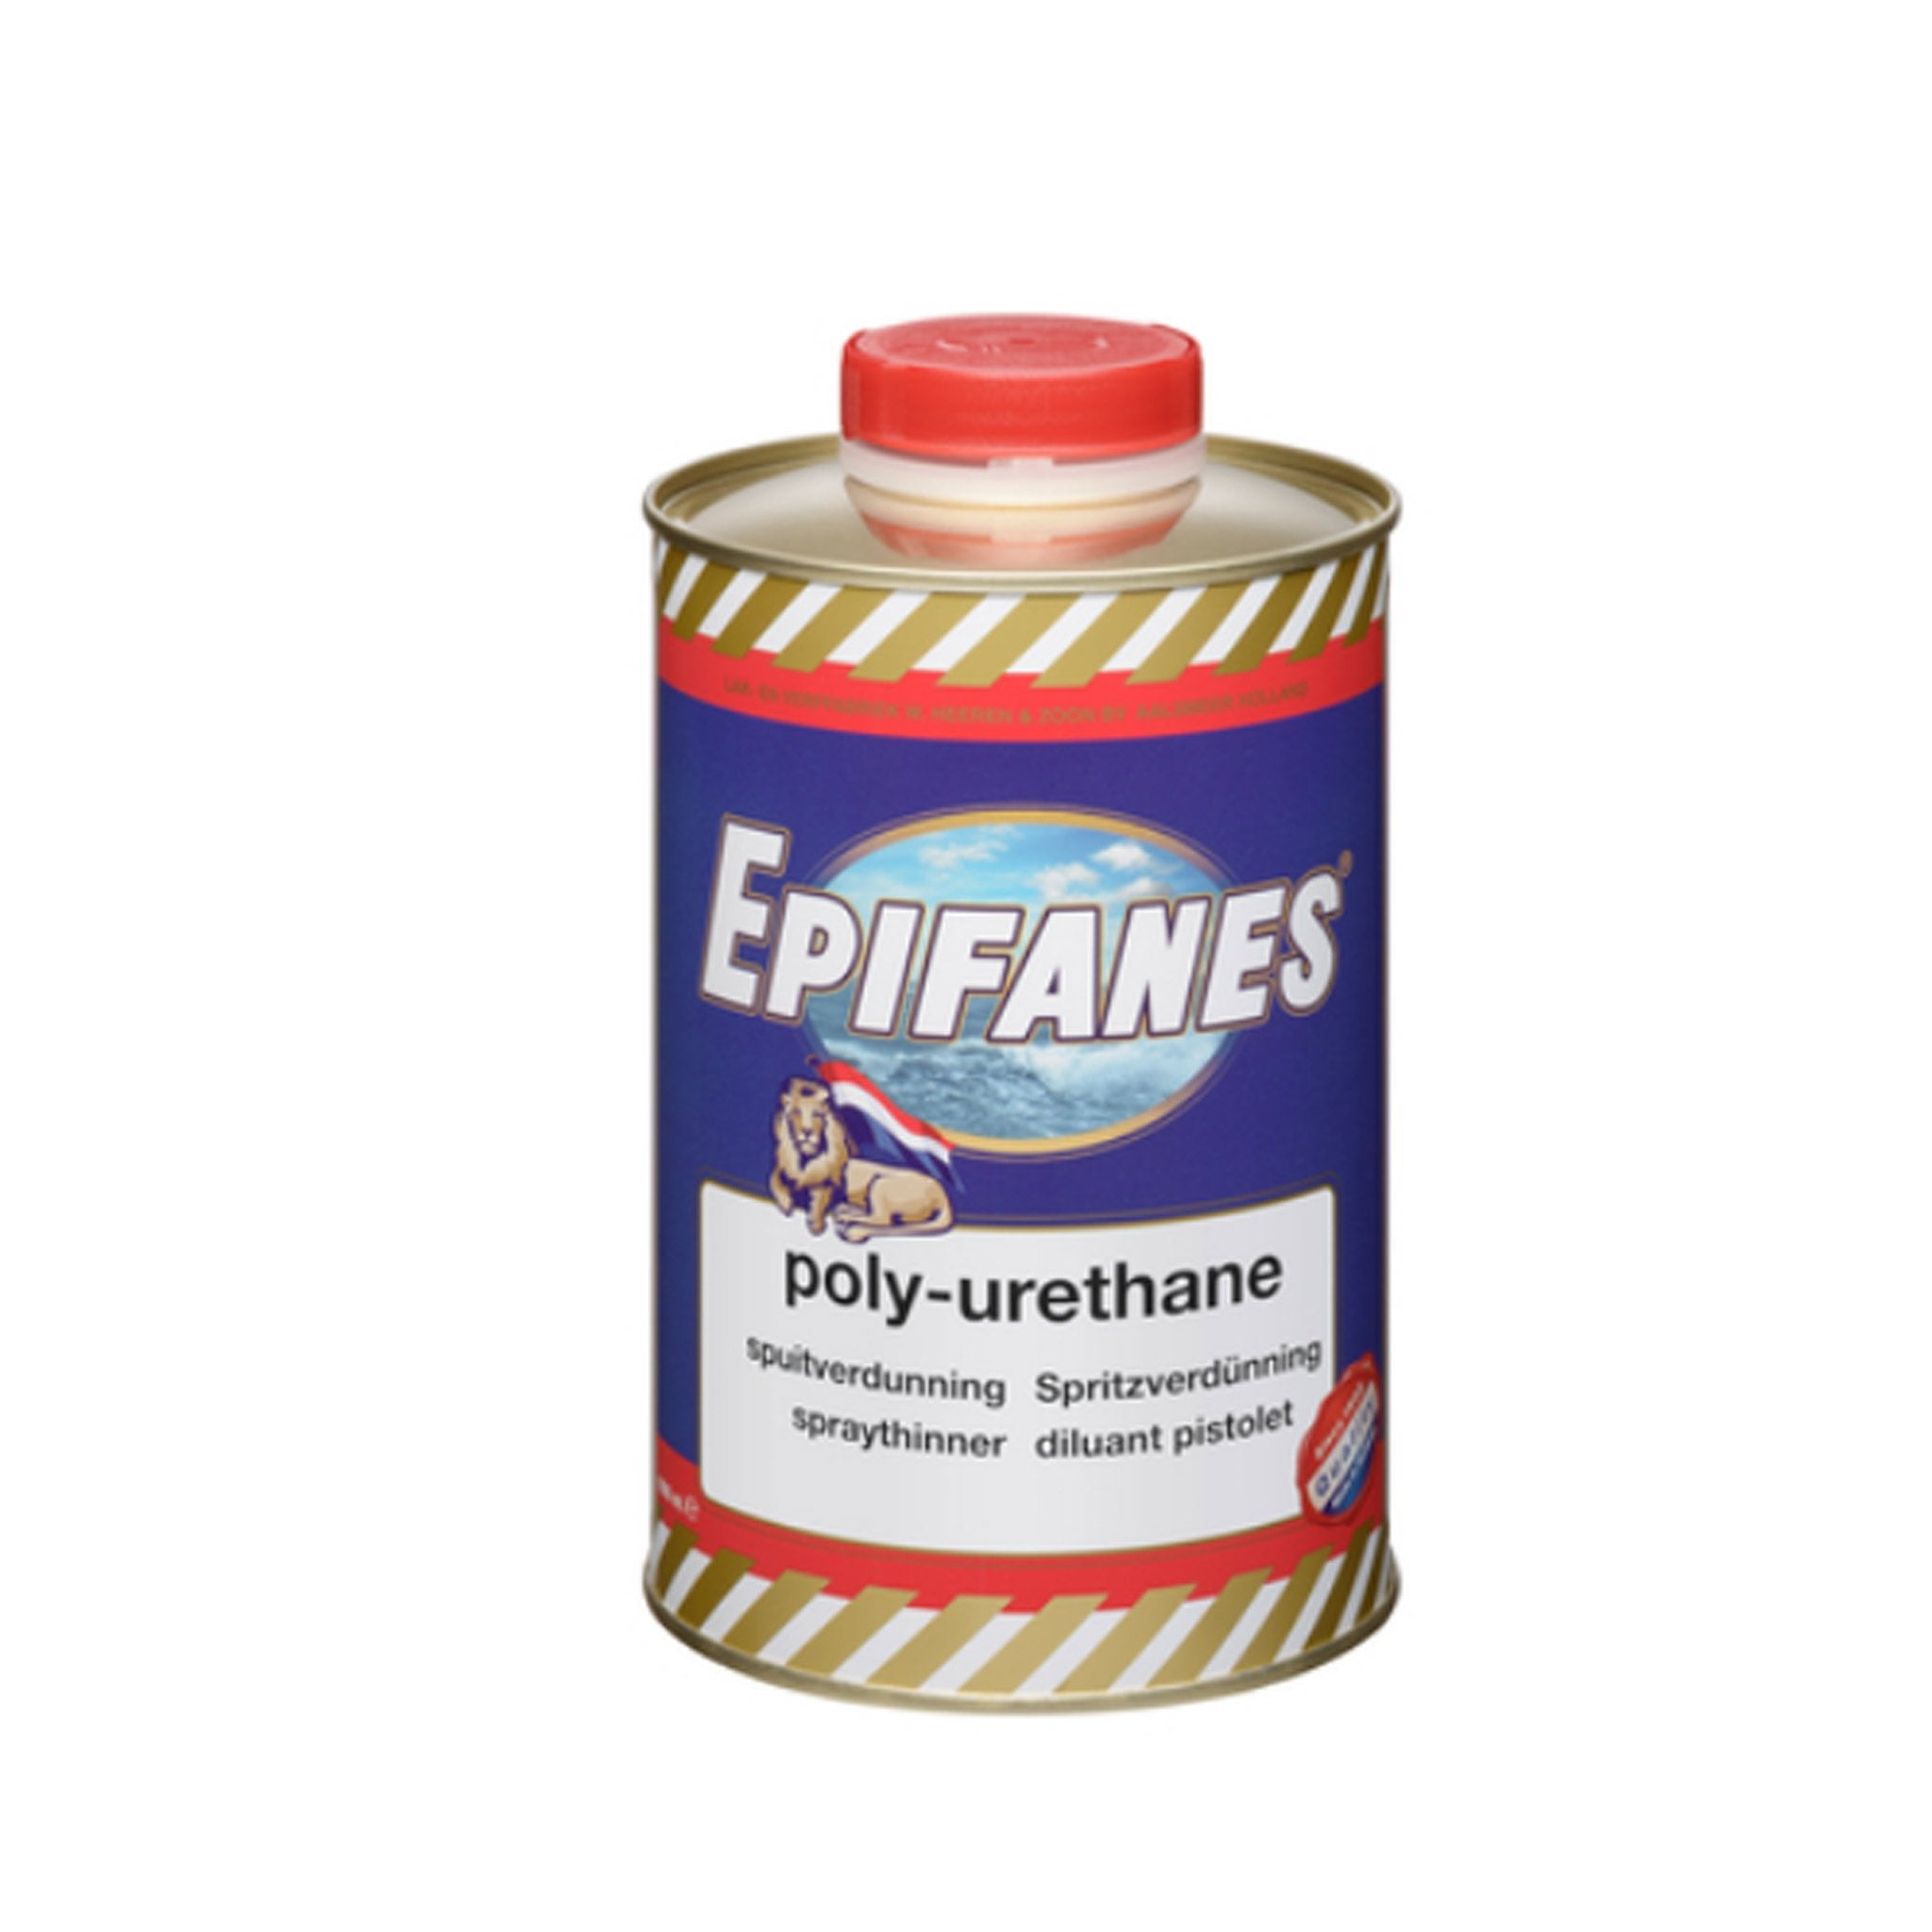 Epifanes Polyurethane [PU] Brush Thinner for Varnish - Arthur Beale